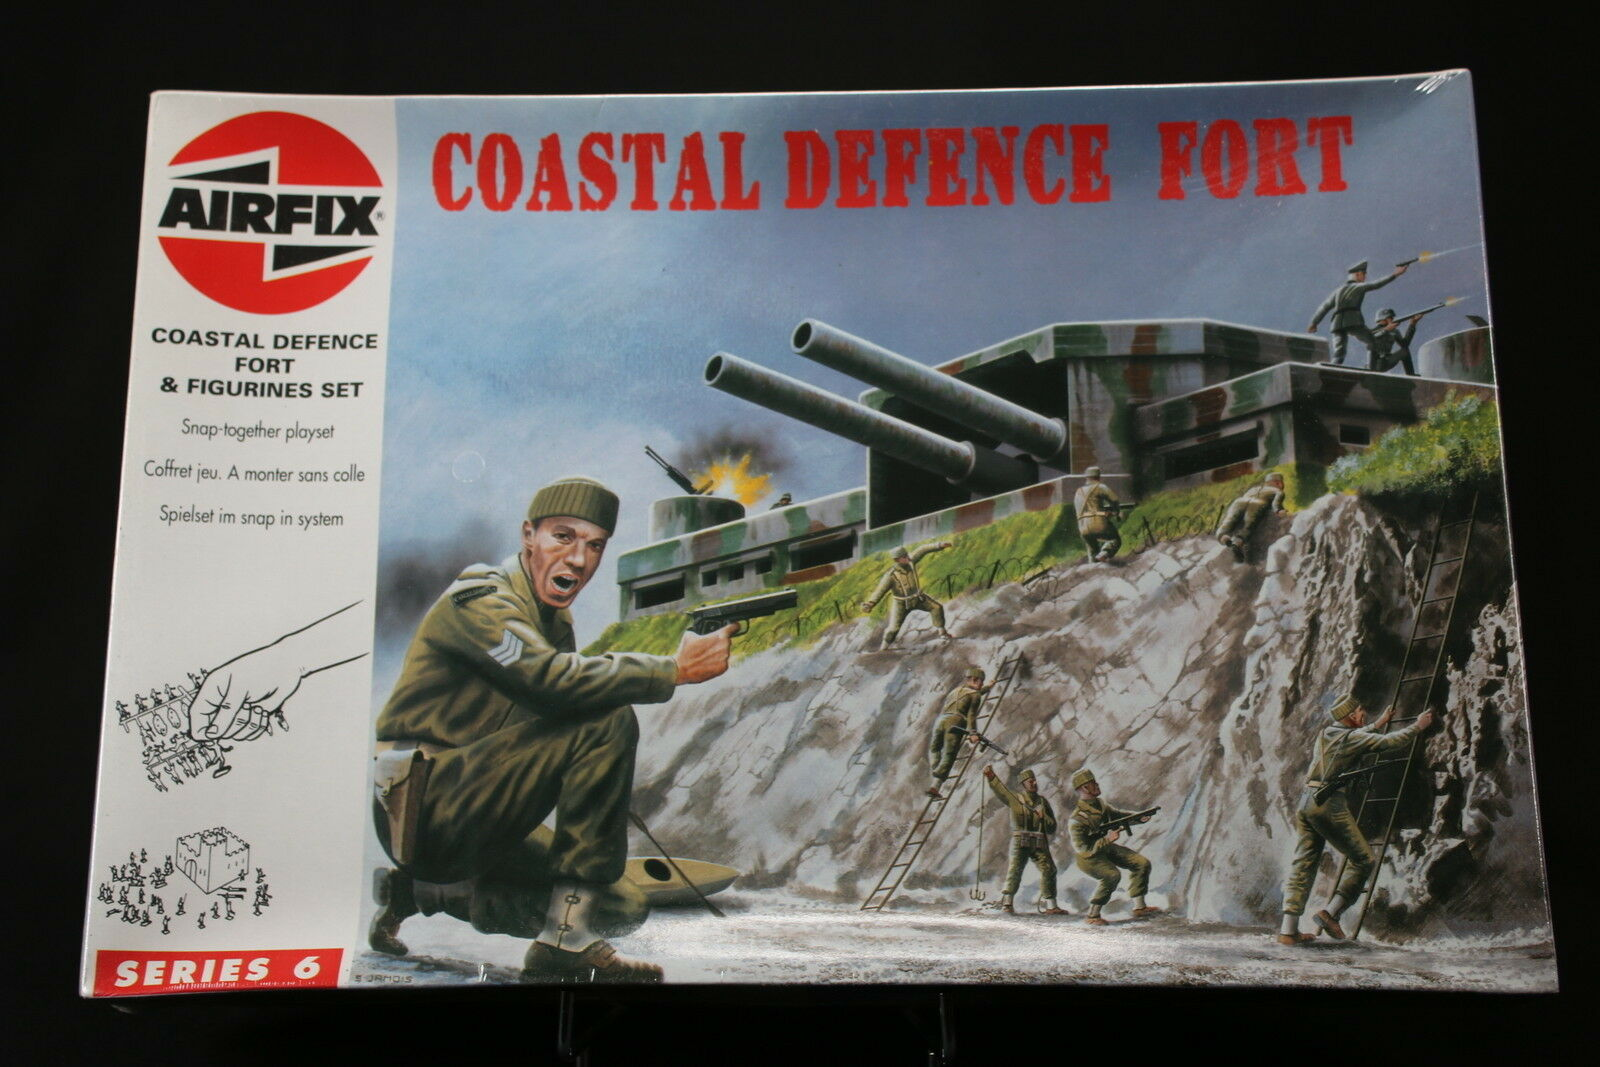 XL054 AIRFIX  1 76 maquette figurine 06706 Coastal Defence Fort  Figurines 1994